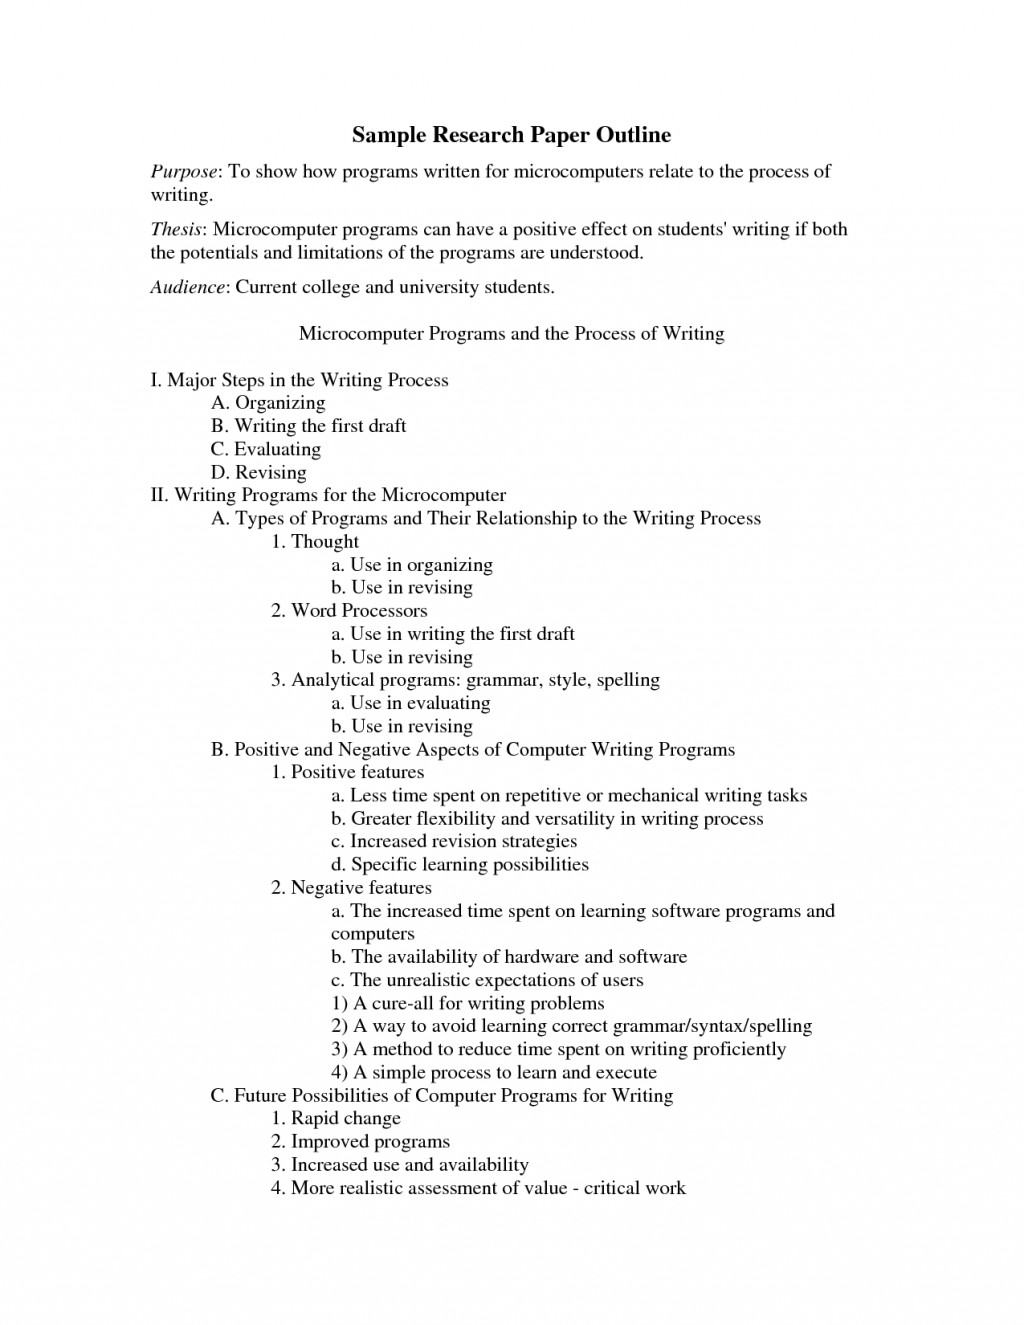 002 How To Make An Apa Research Paper Outline College Examples 477364 Astounding For A Style Large